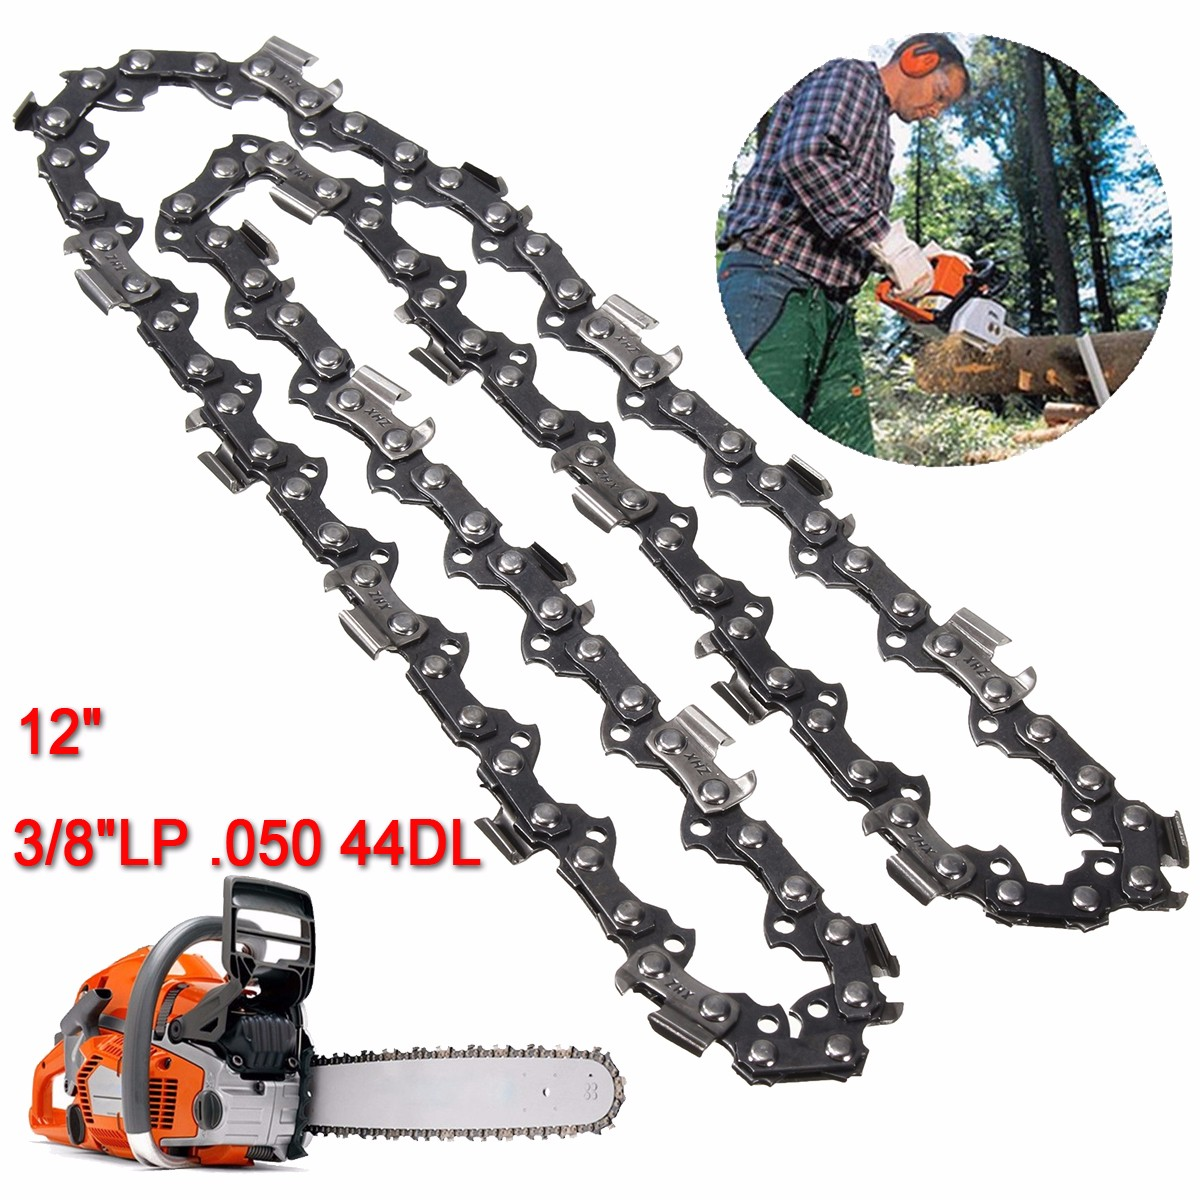 12 Inch 44 Drive Links Substitution Chain Saw Saw Mill Chain 3/8 Inch Pitch 050 Gauge